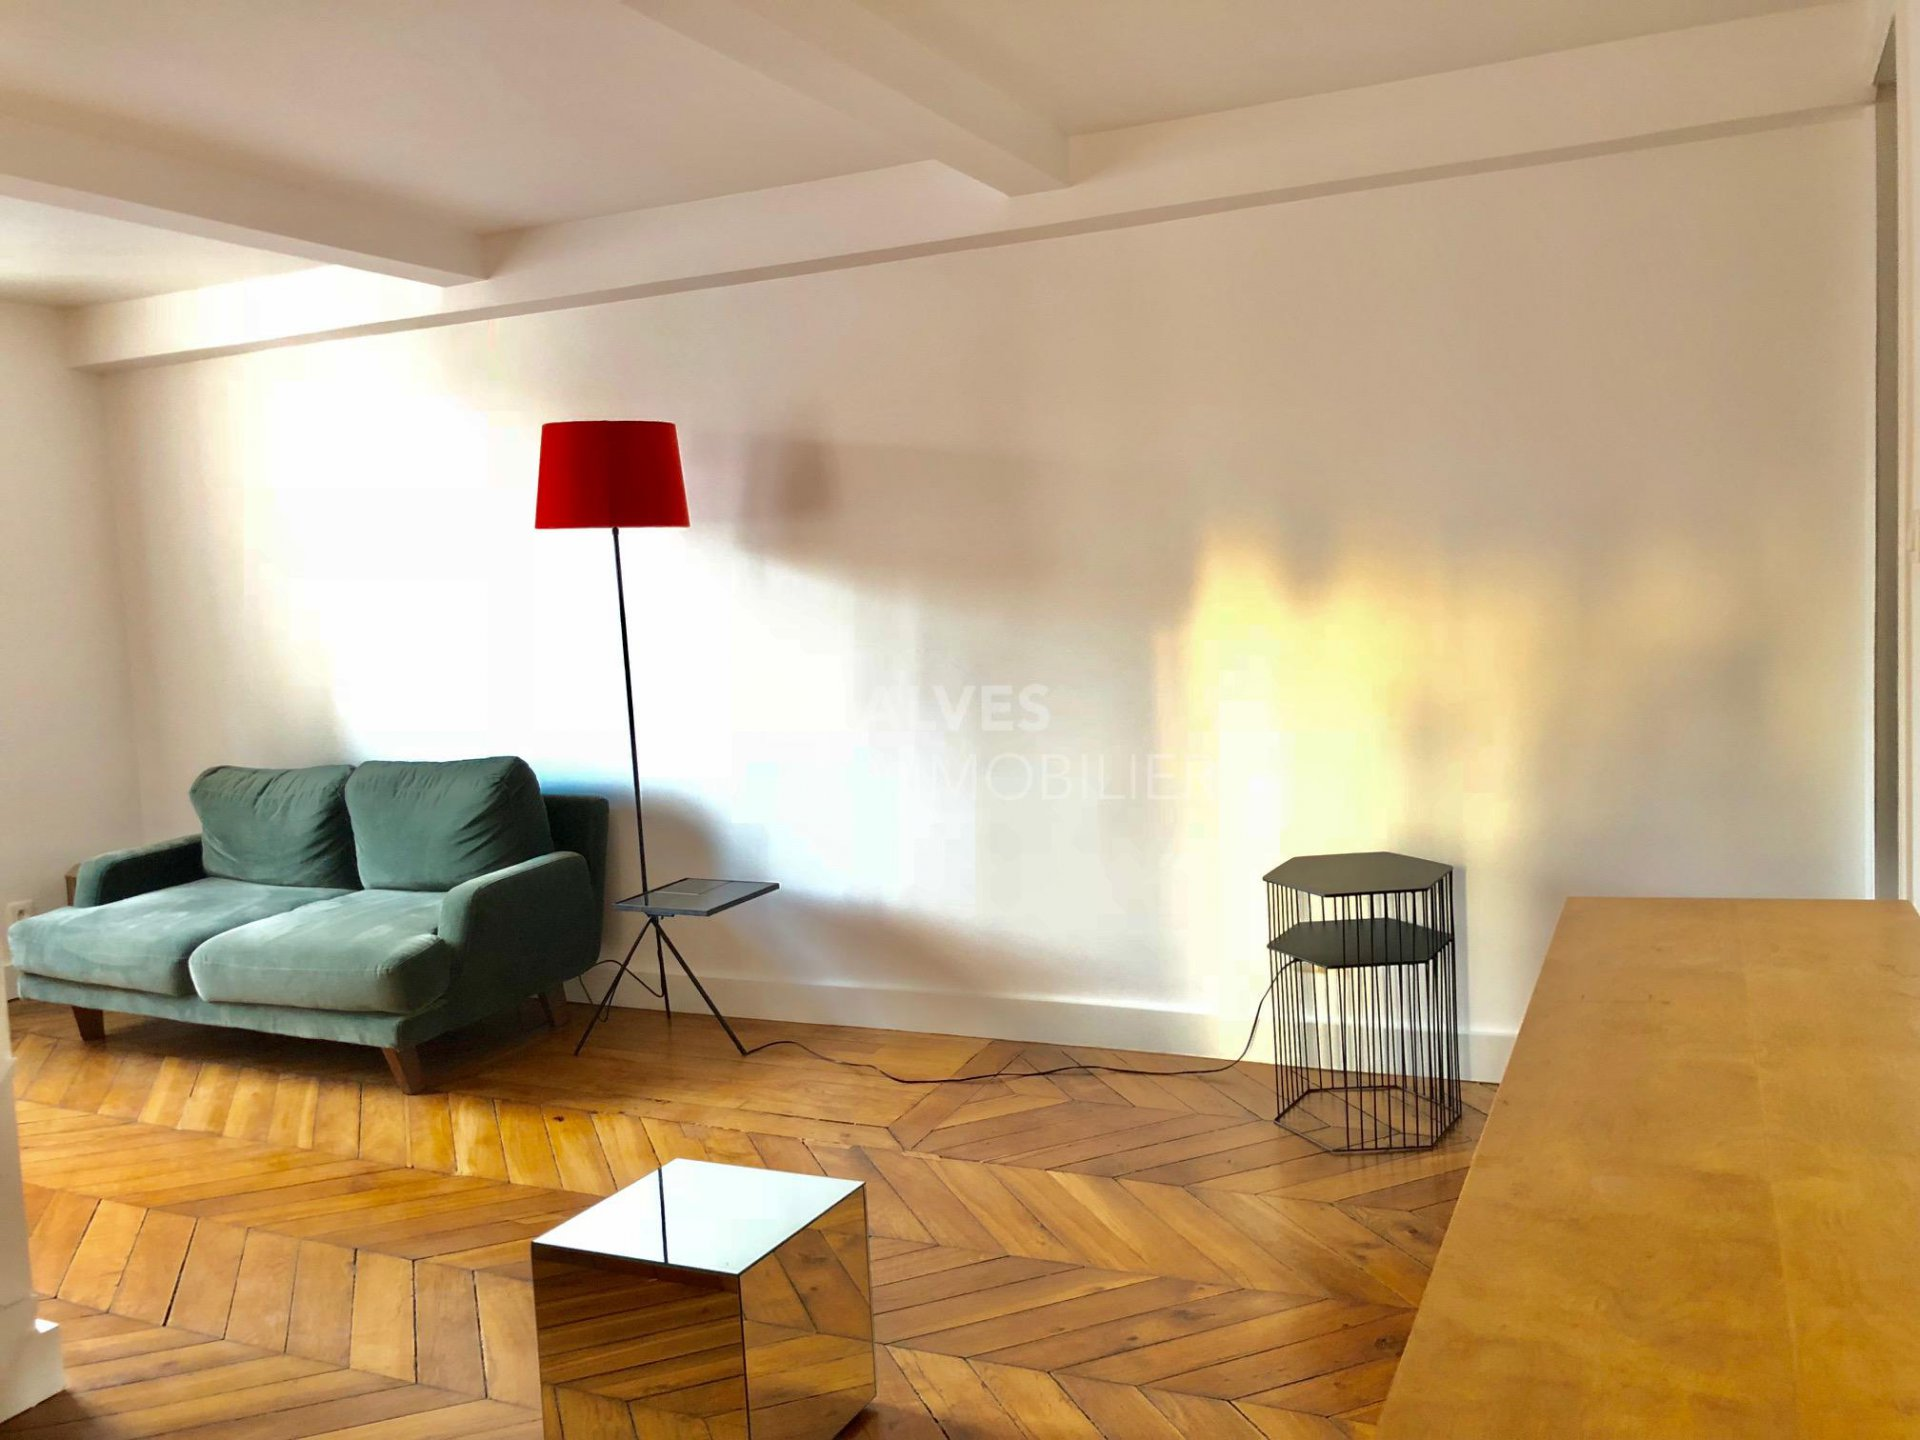 Location Appartement - Paris 10ème